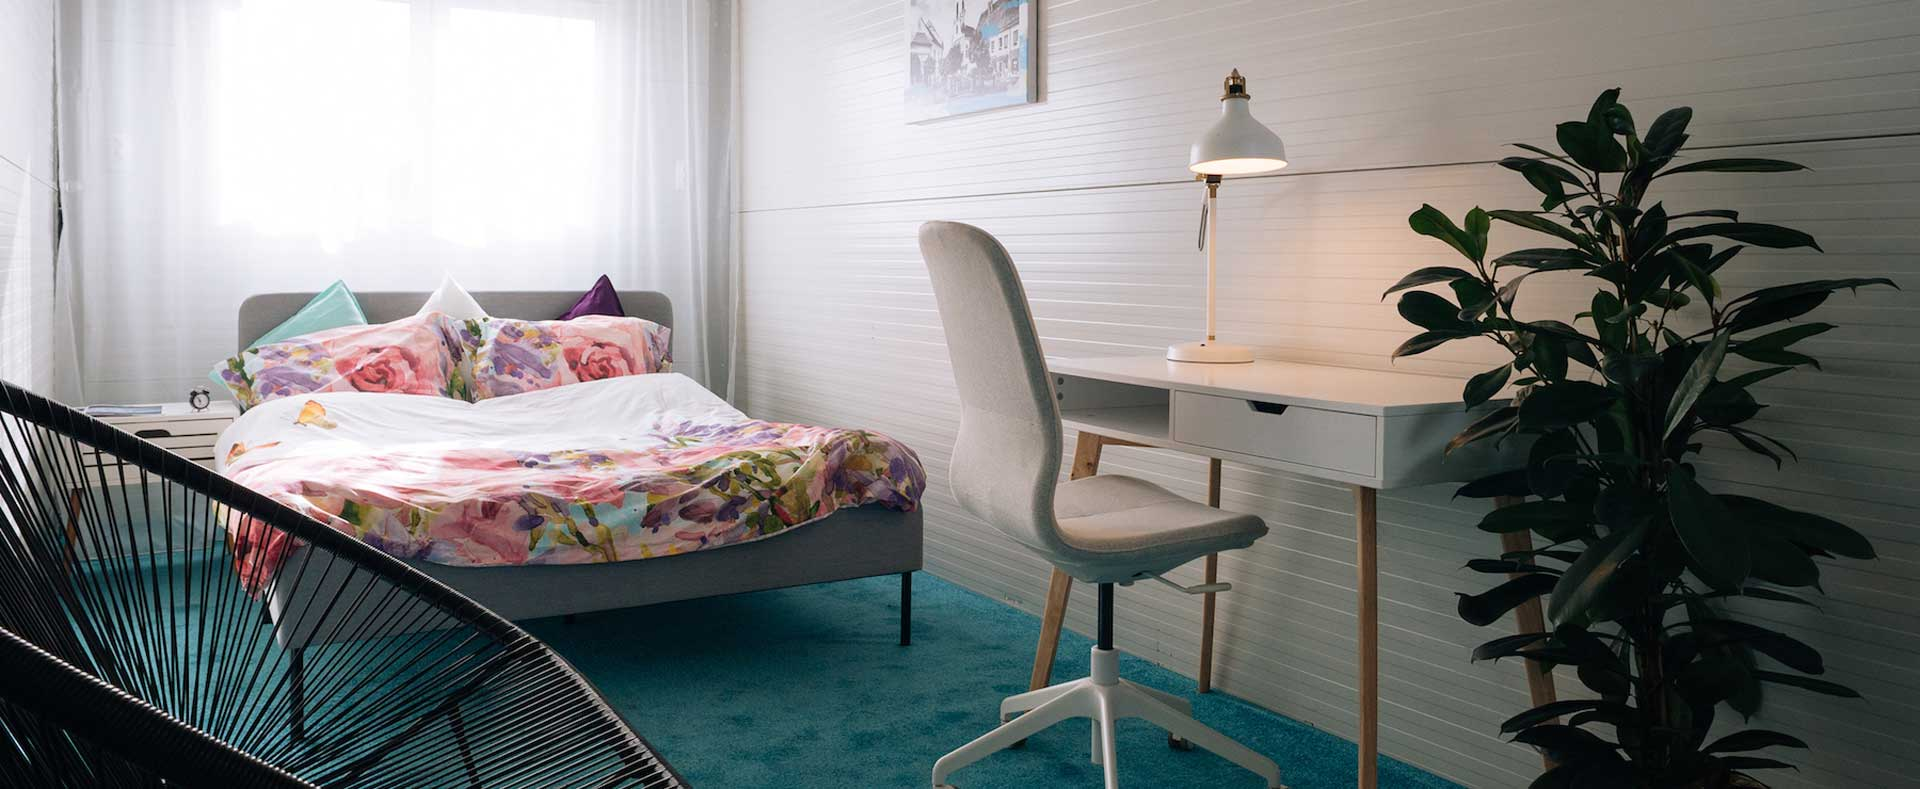 care home container bedroom